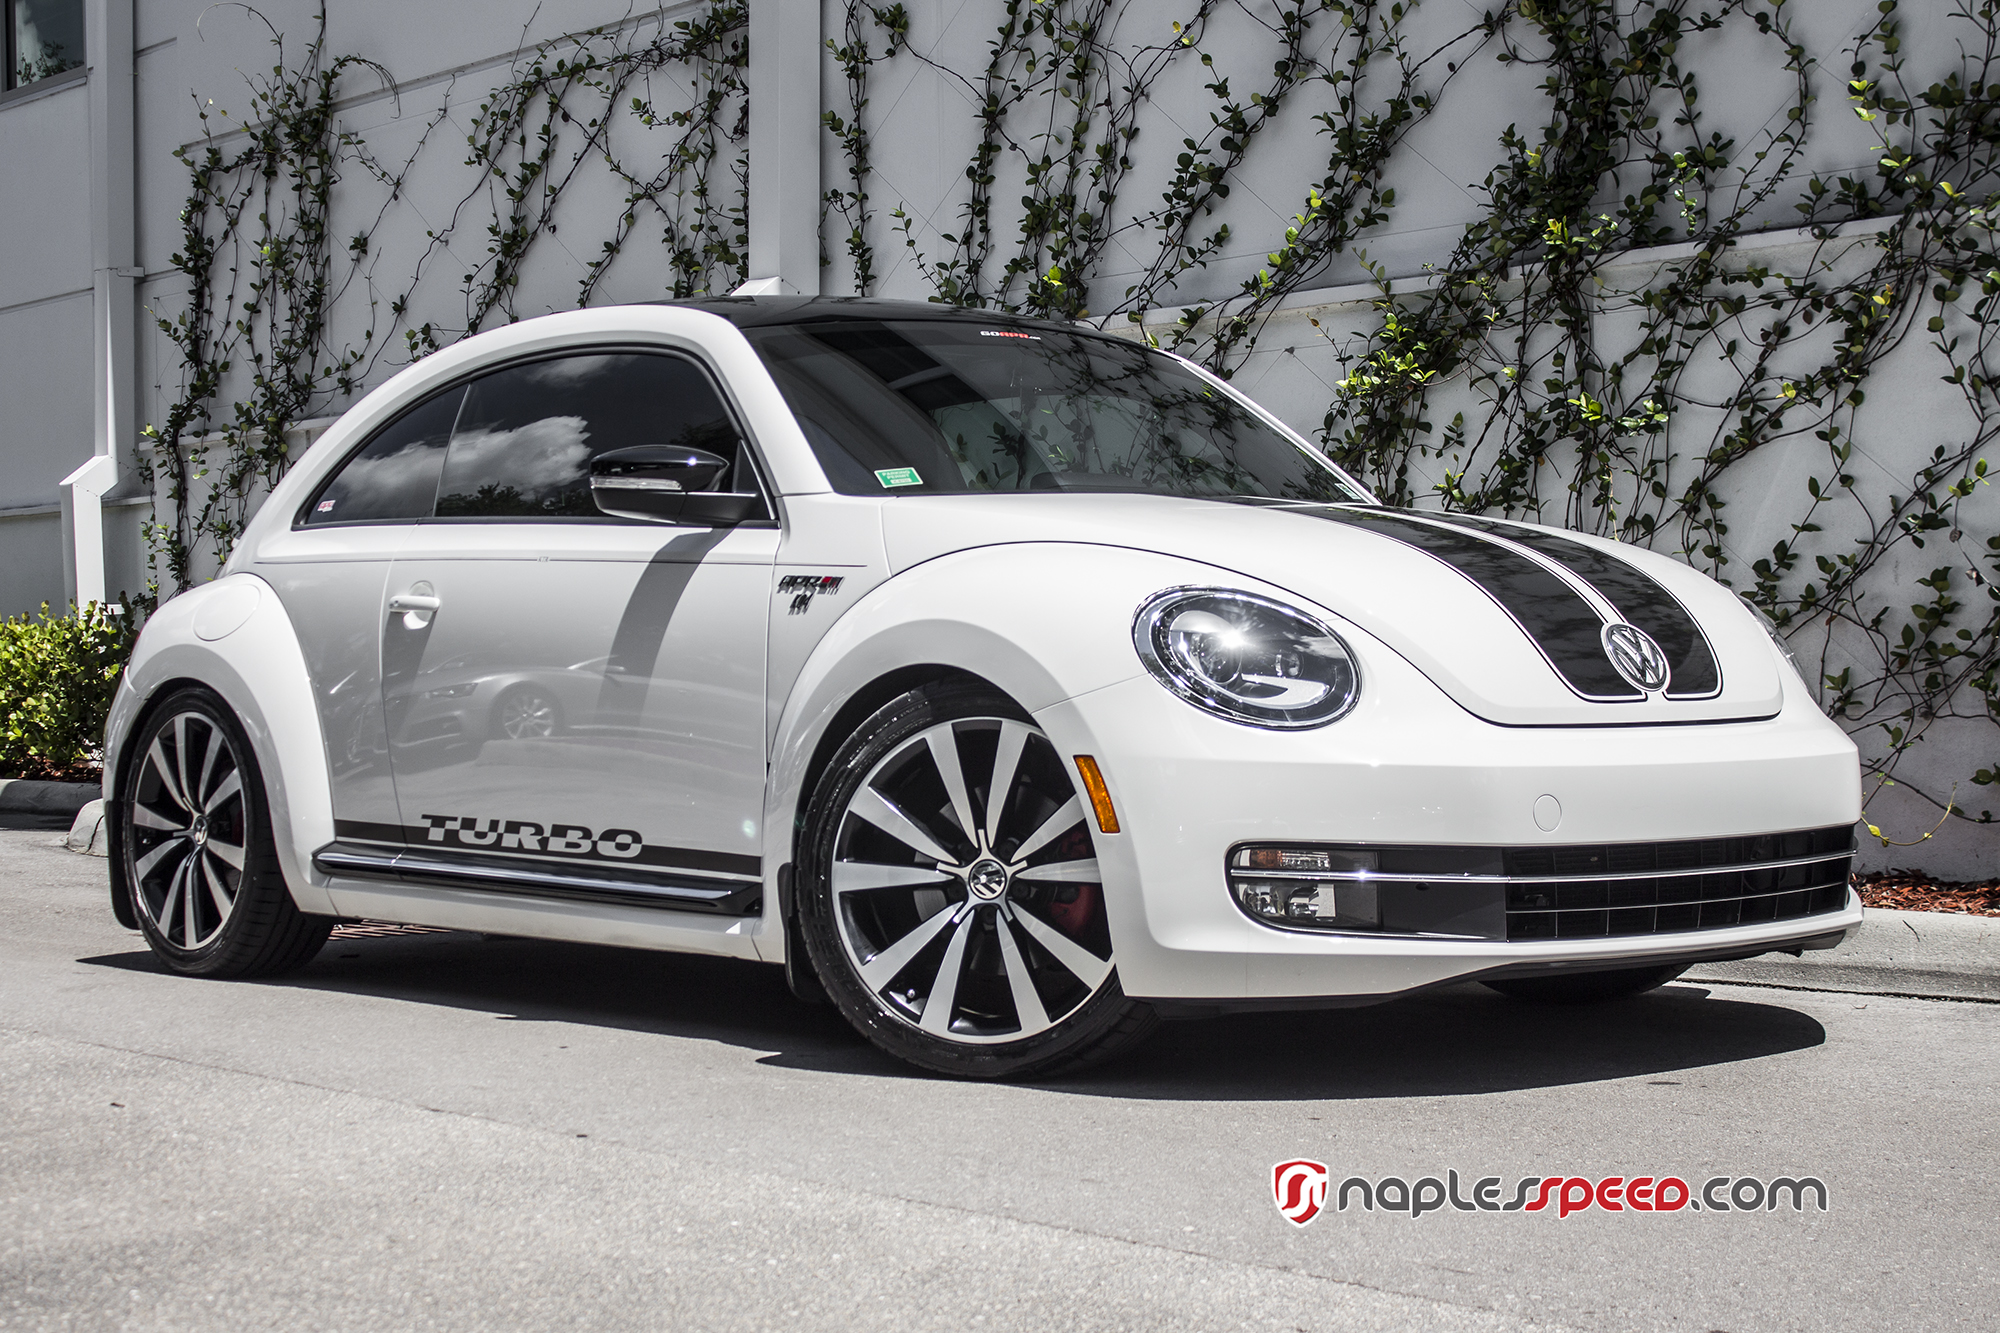 Volkswagen Beetle Naples Speed 6 Advanced Automotive Accessories